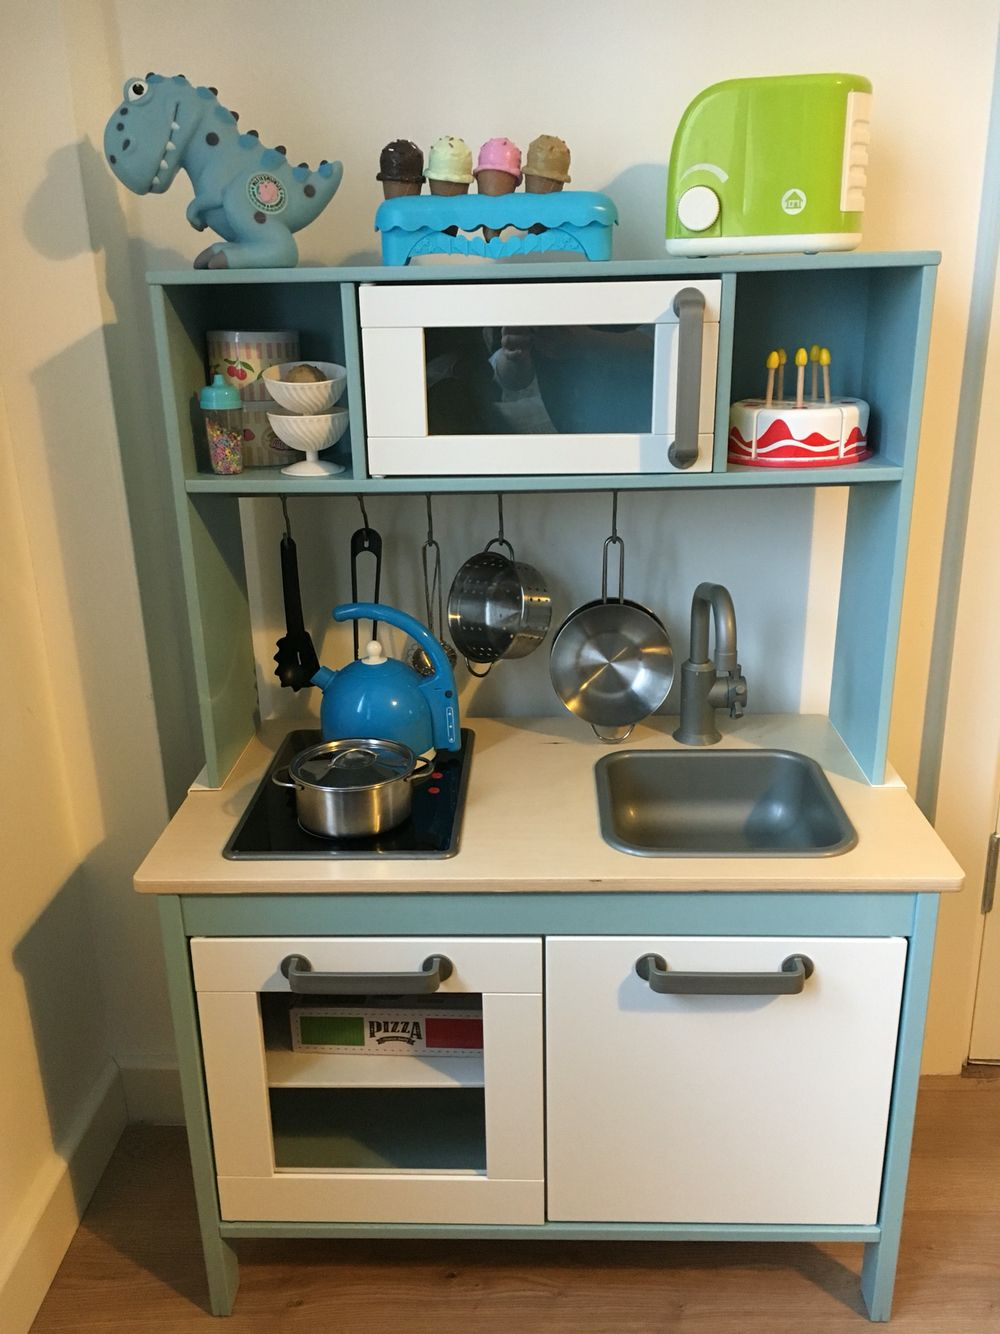 ikea duktig kitchen hack for a little boy zora pinterest kitchens playrooms and ikea hack. Black Bedroom Furniture Sets. Home Design Ideas